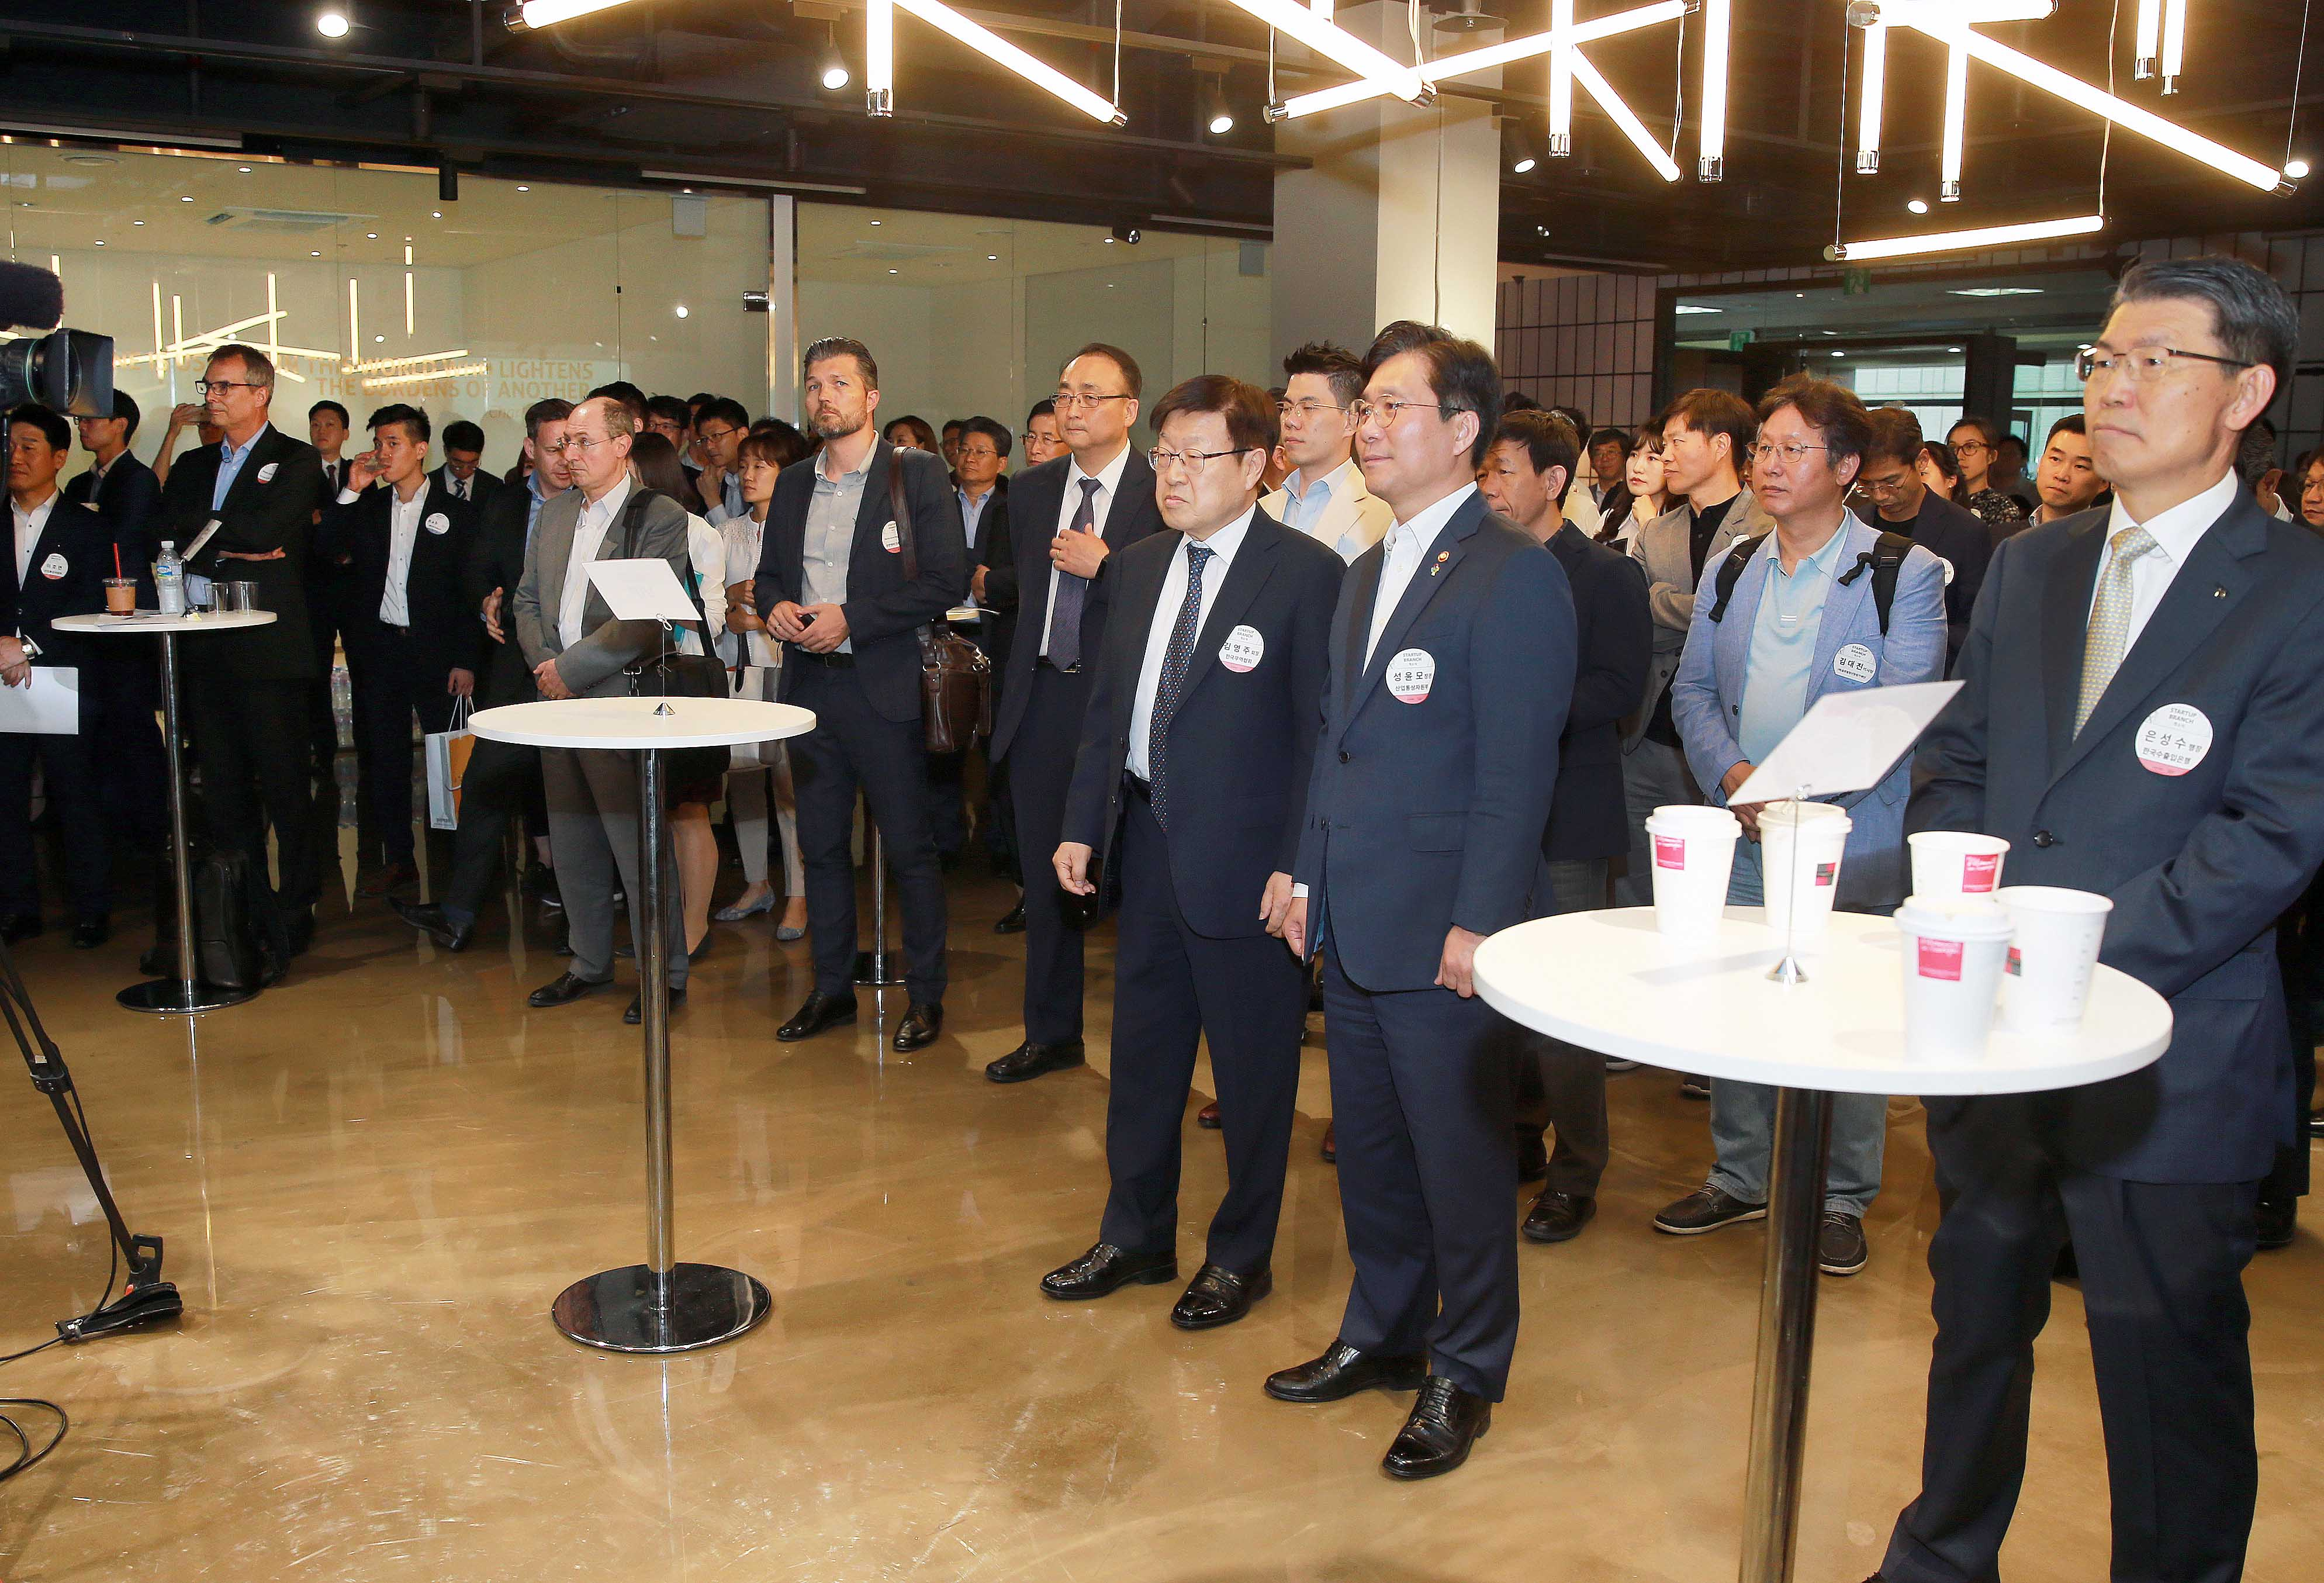 Minister Sung attends opening ceremony of 'Startup Branch' in Seoul Image 0